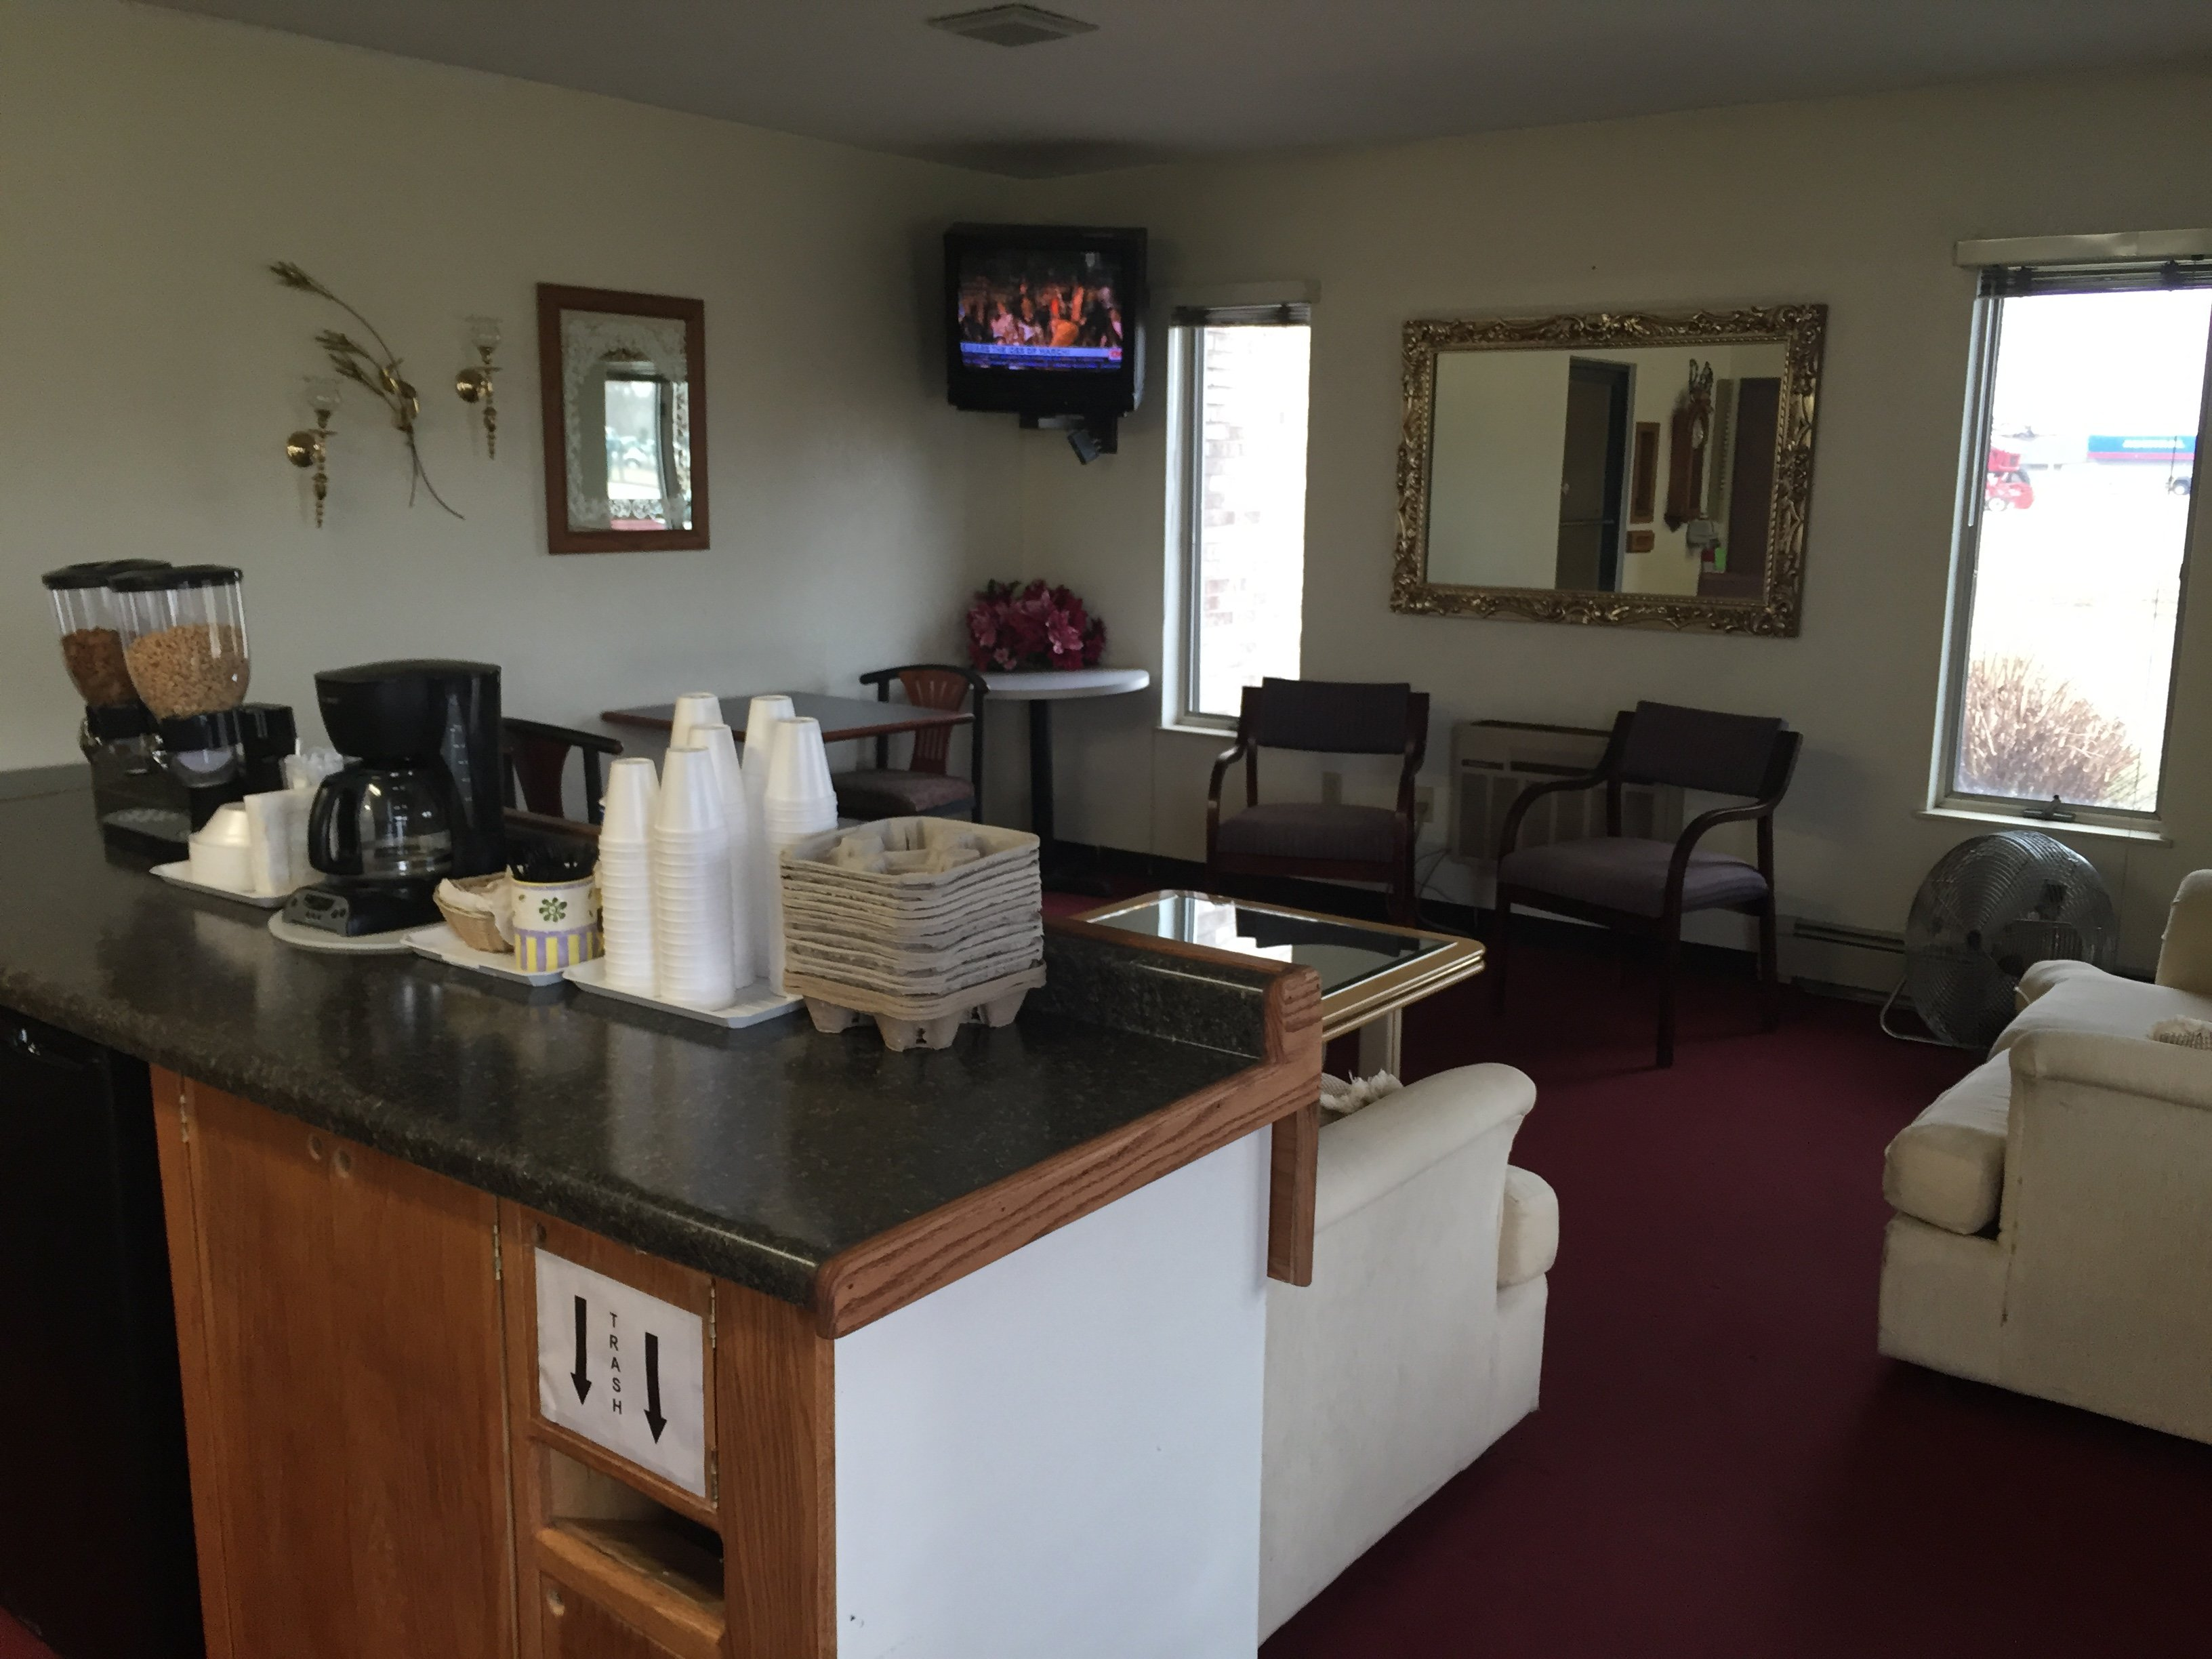 Interior view of the accommodations in Chesaning, MI